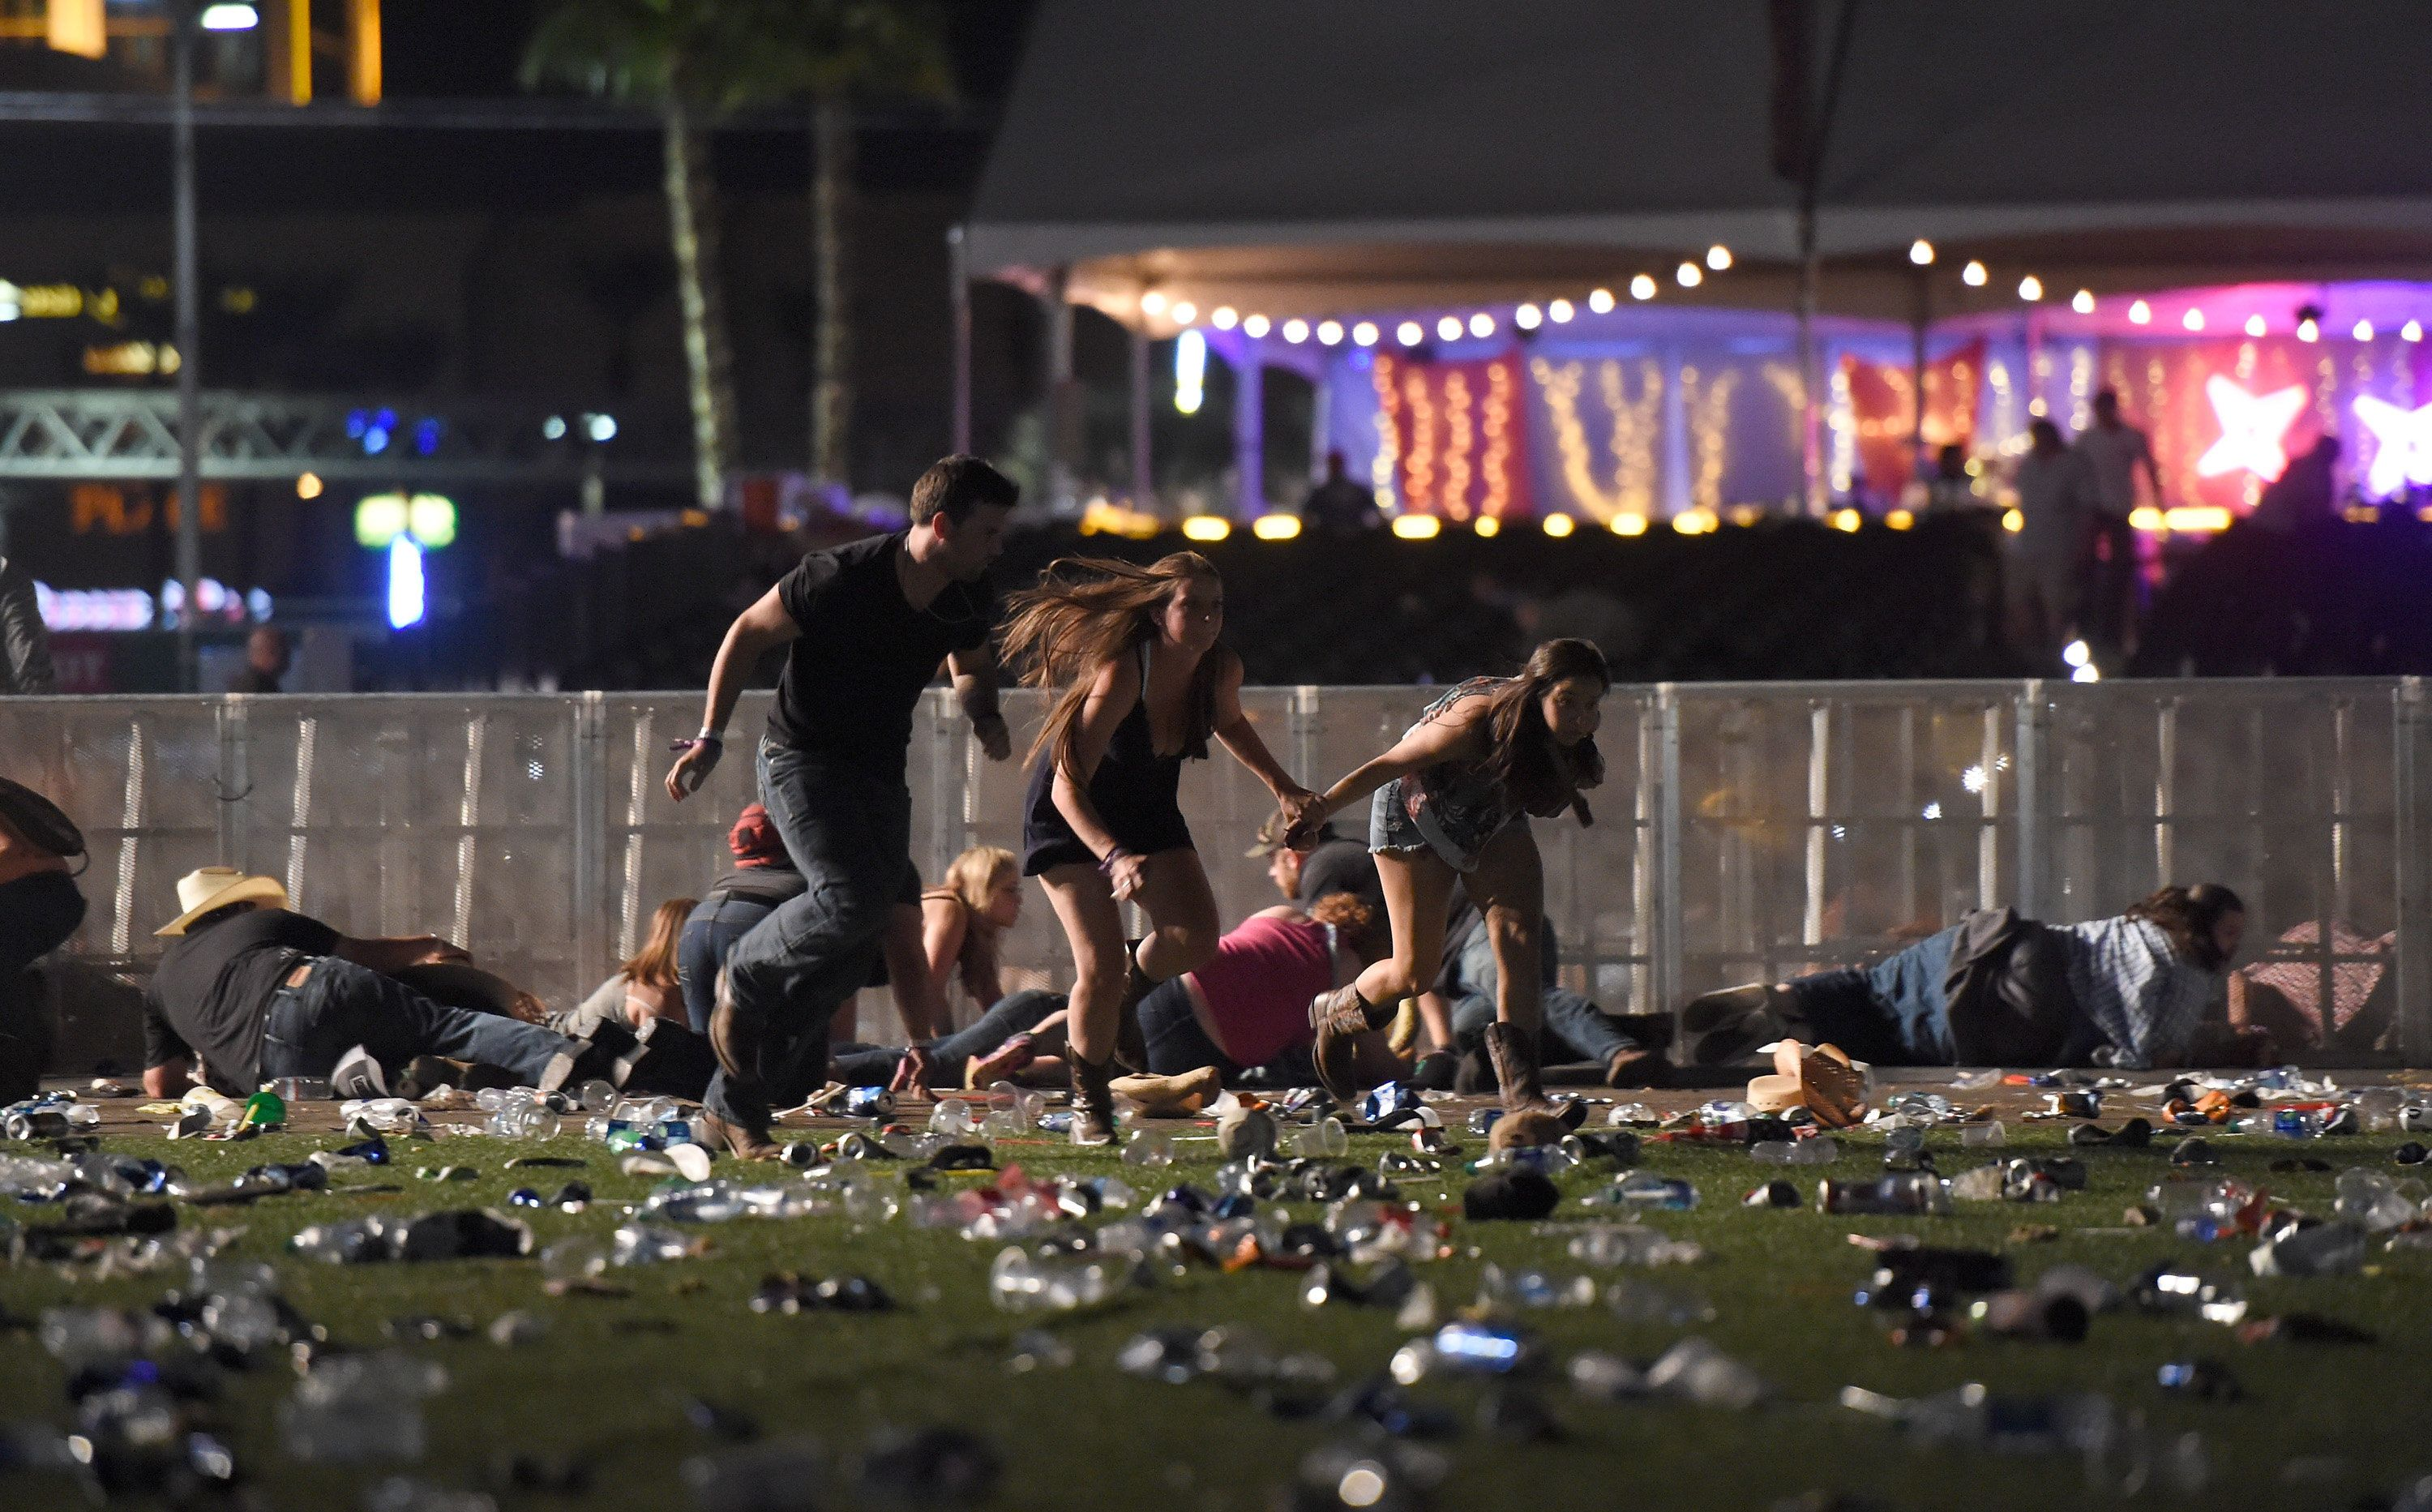 Danley's sister claims Paddock sent her away not to disrupt attack